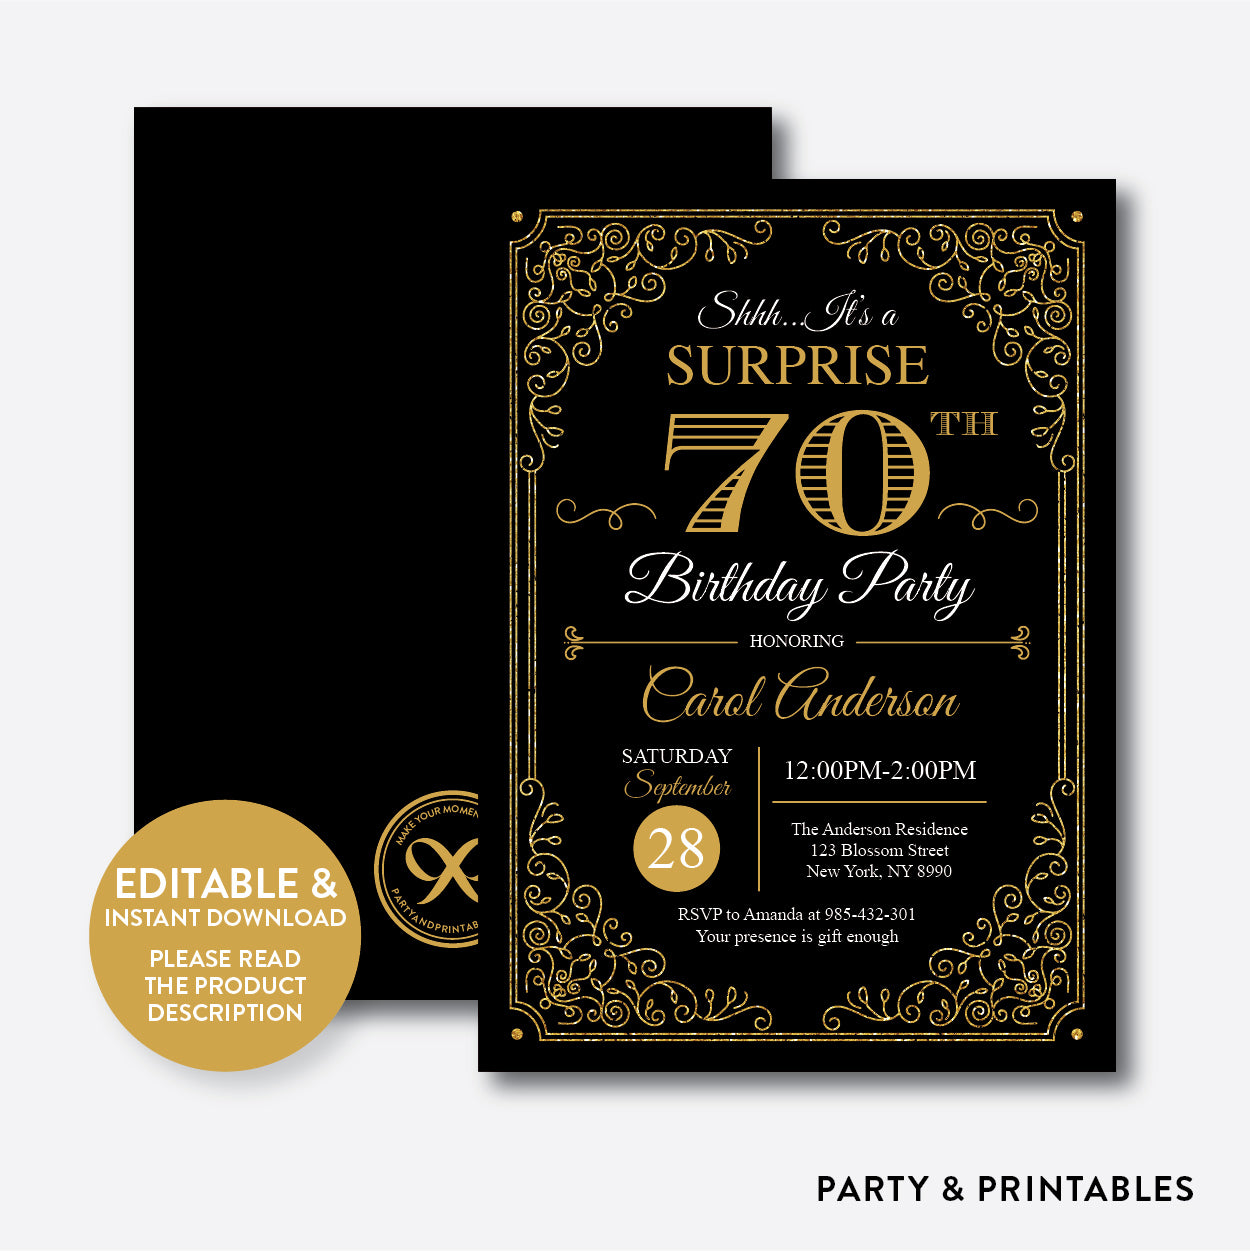 Adult Birthday Invitation / Editable / Instant Download (SAB.11), invitation - Party and Printables